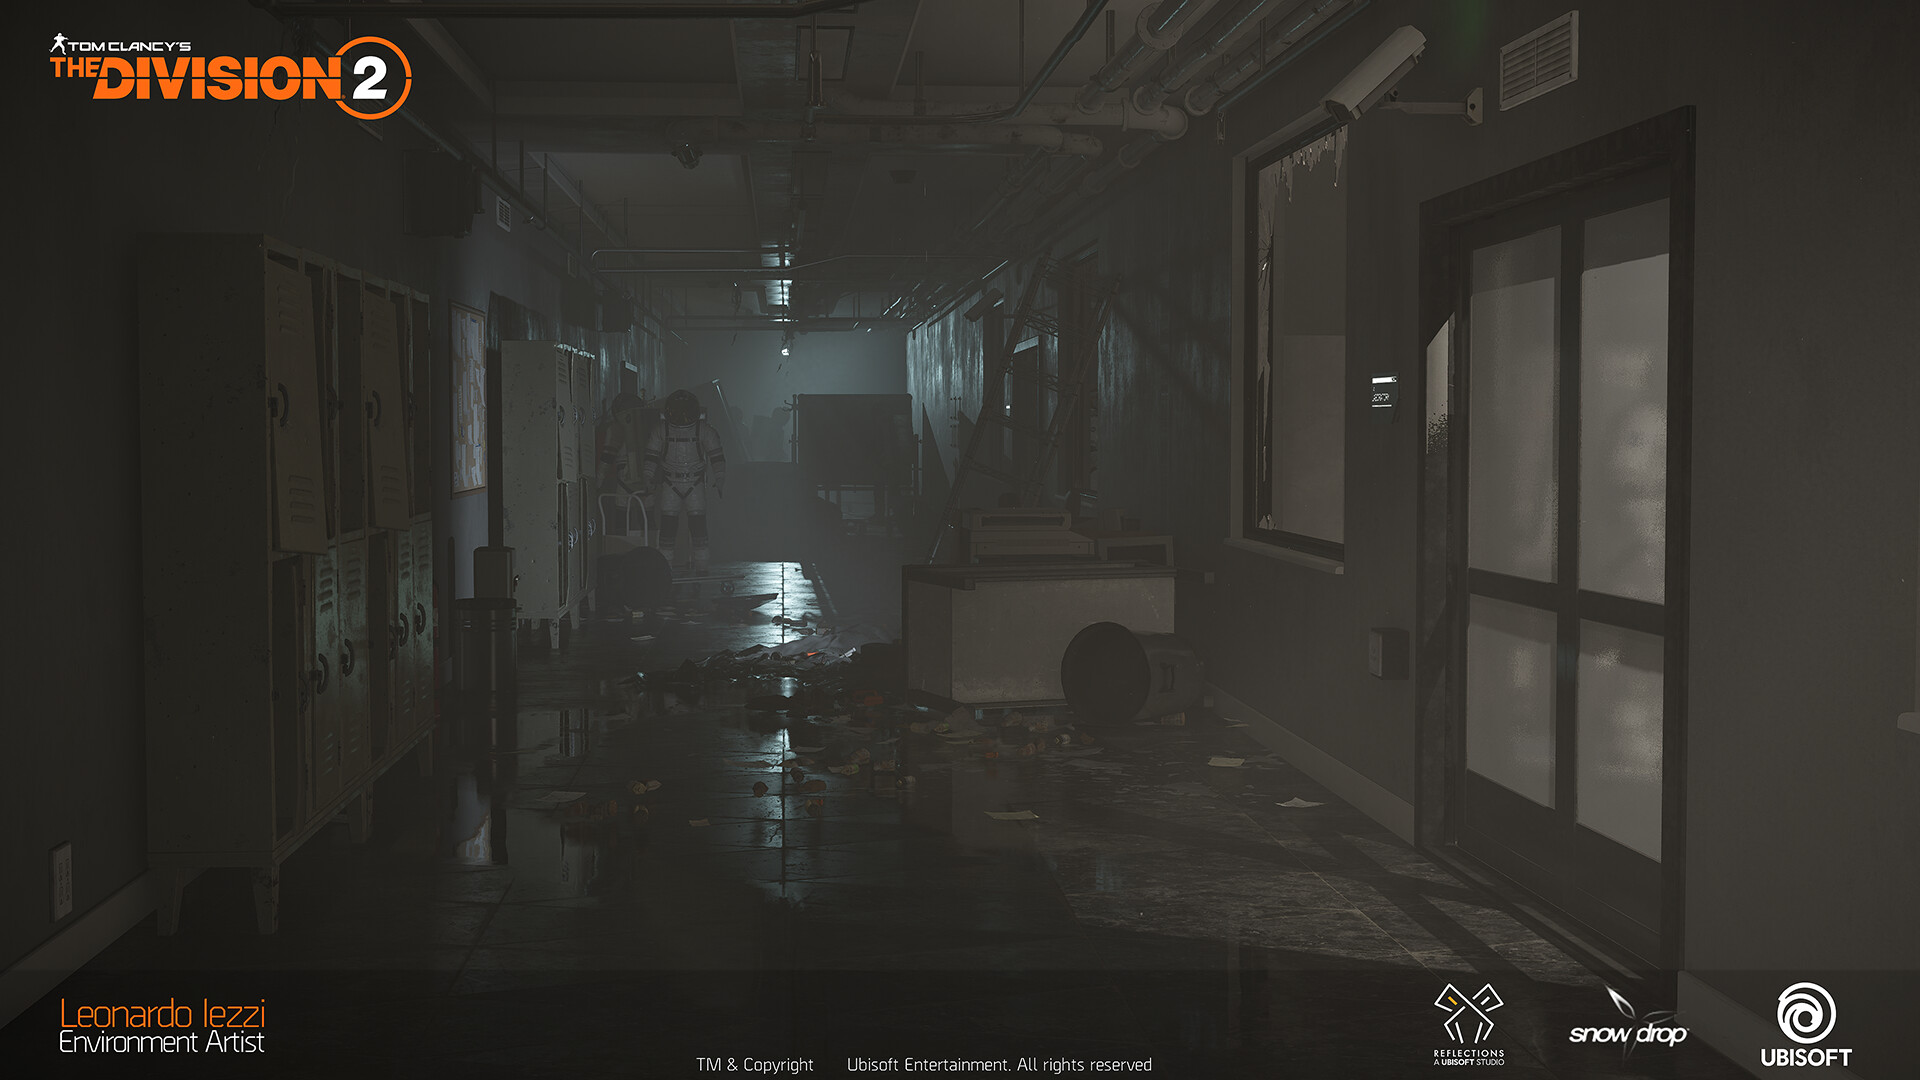 Leonardo iezzi leonardo iezzi the division 2 environment art 05 lab 001